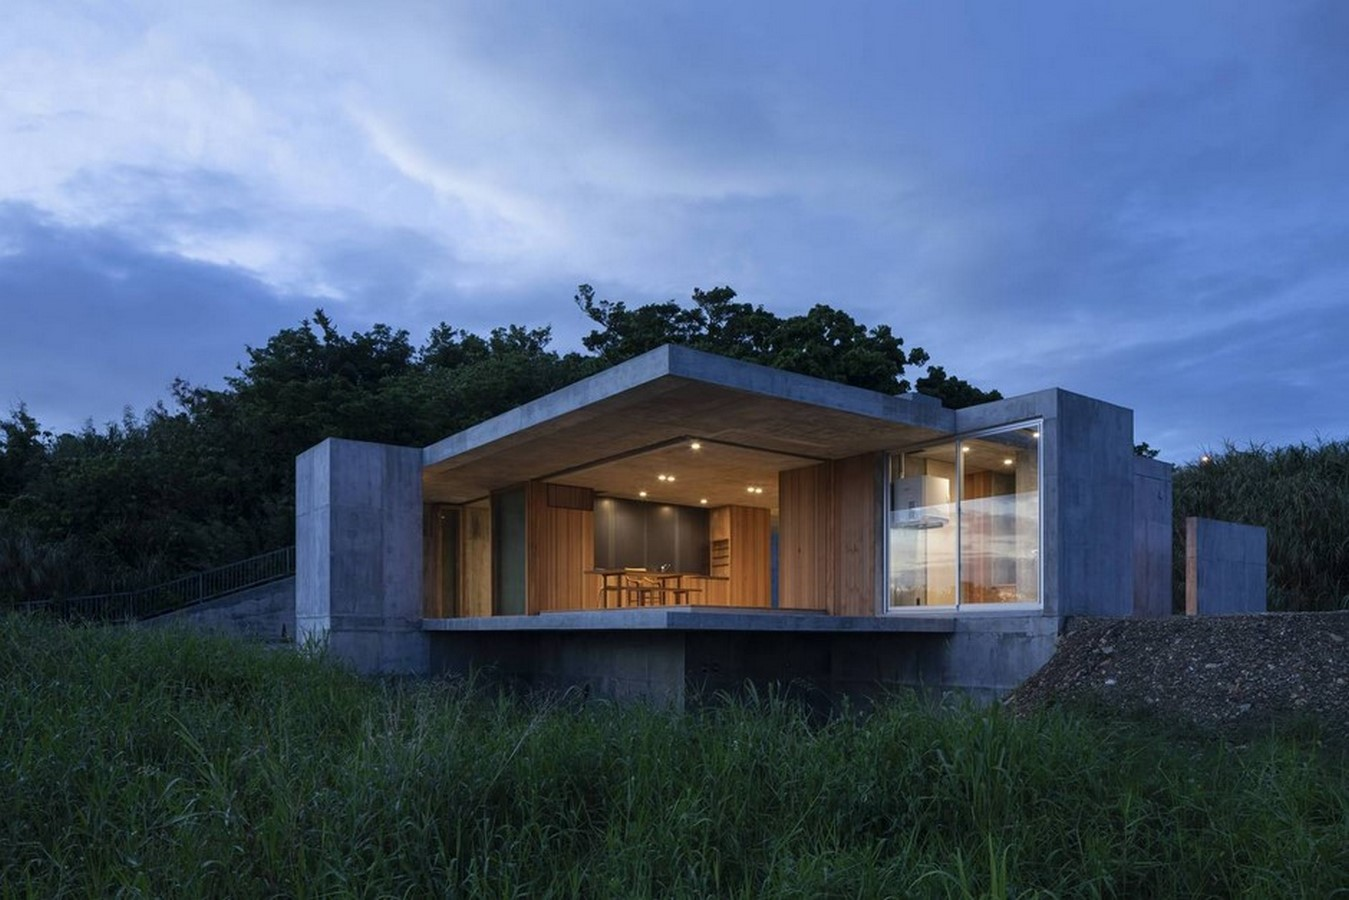 50 Examples of Modern concrete homes - Sheet11